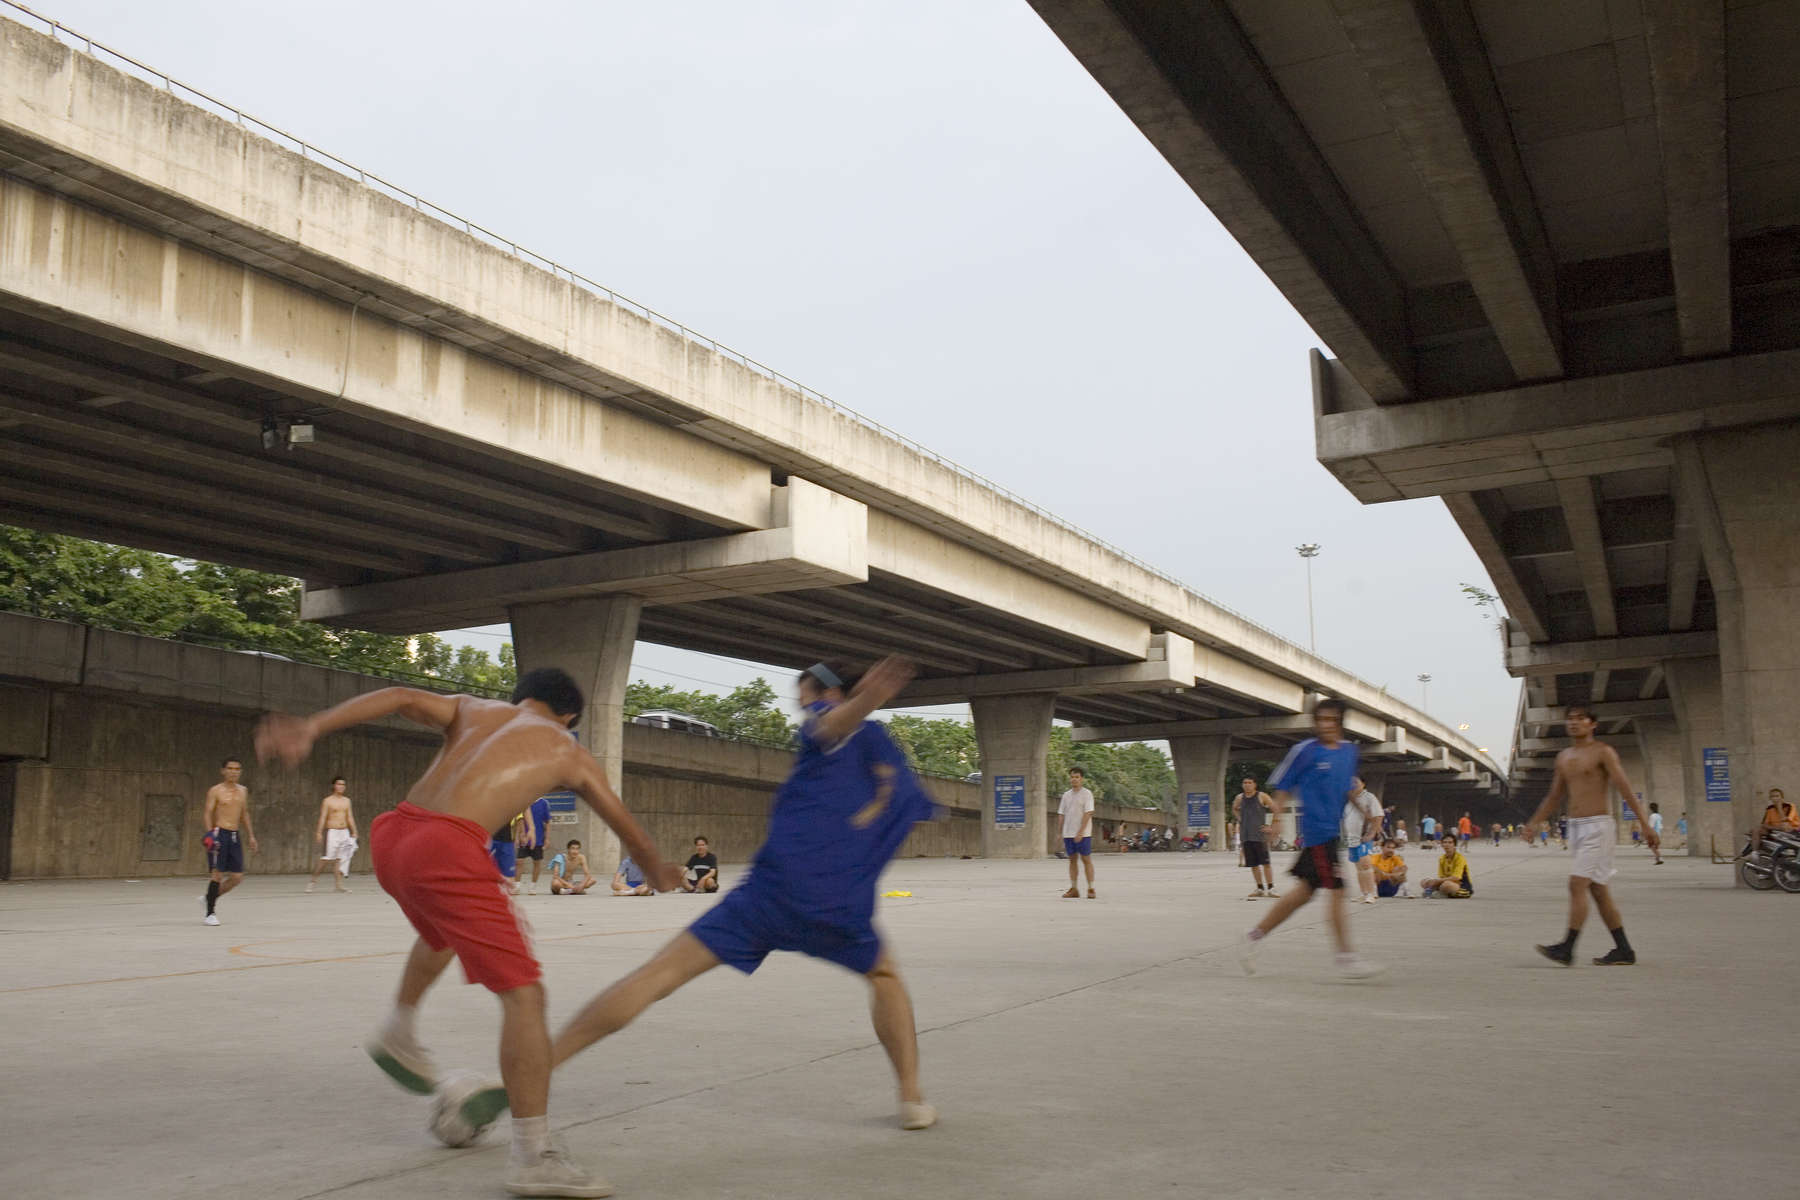 A Futsal match being played under a flyover in the Thai capital Bangkok. There are over 10,000 teams in Thailand, part of the success of the sport is due to the fact that it can be played in a small place.In disaster areas, war zones and urban wastelands, football keeps humanity alive. It brings nations together and promotes unity. It encourages equality and generates pride and self-belief. It has the power to heal and to help, to motivate, to give freedom to dreams and empower a generation. There are millions of people playing the game or helping it to flourish who find that football brings a positive dimension to their lives.Away from the billionaire owned clubs with it's multi-million dollar players, Football's Hidden Story is a series of emotive human interest photographs showing the positive impact football has had at grassroot level on individuals and communities all around the world.